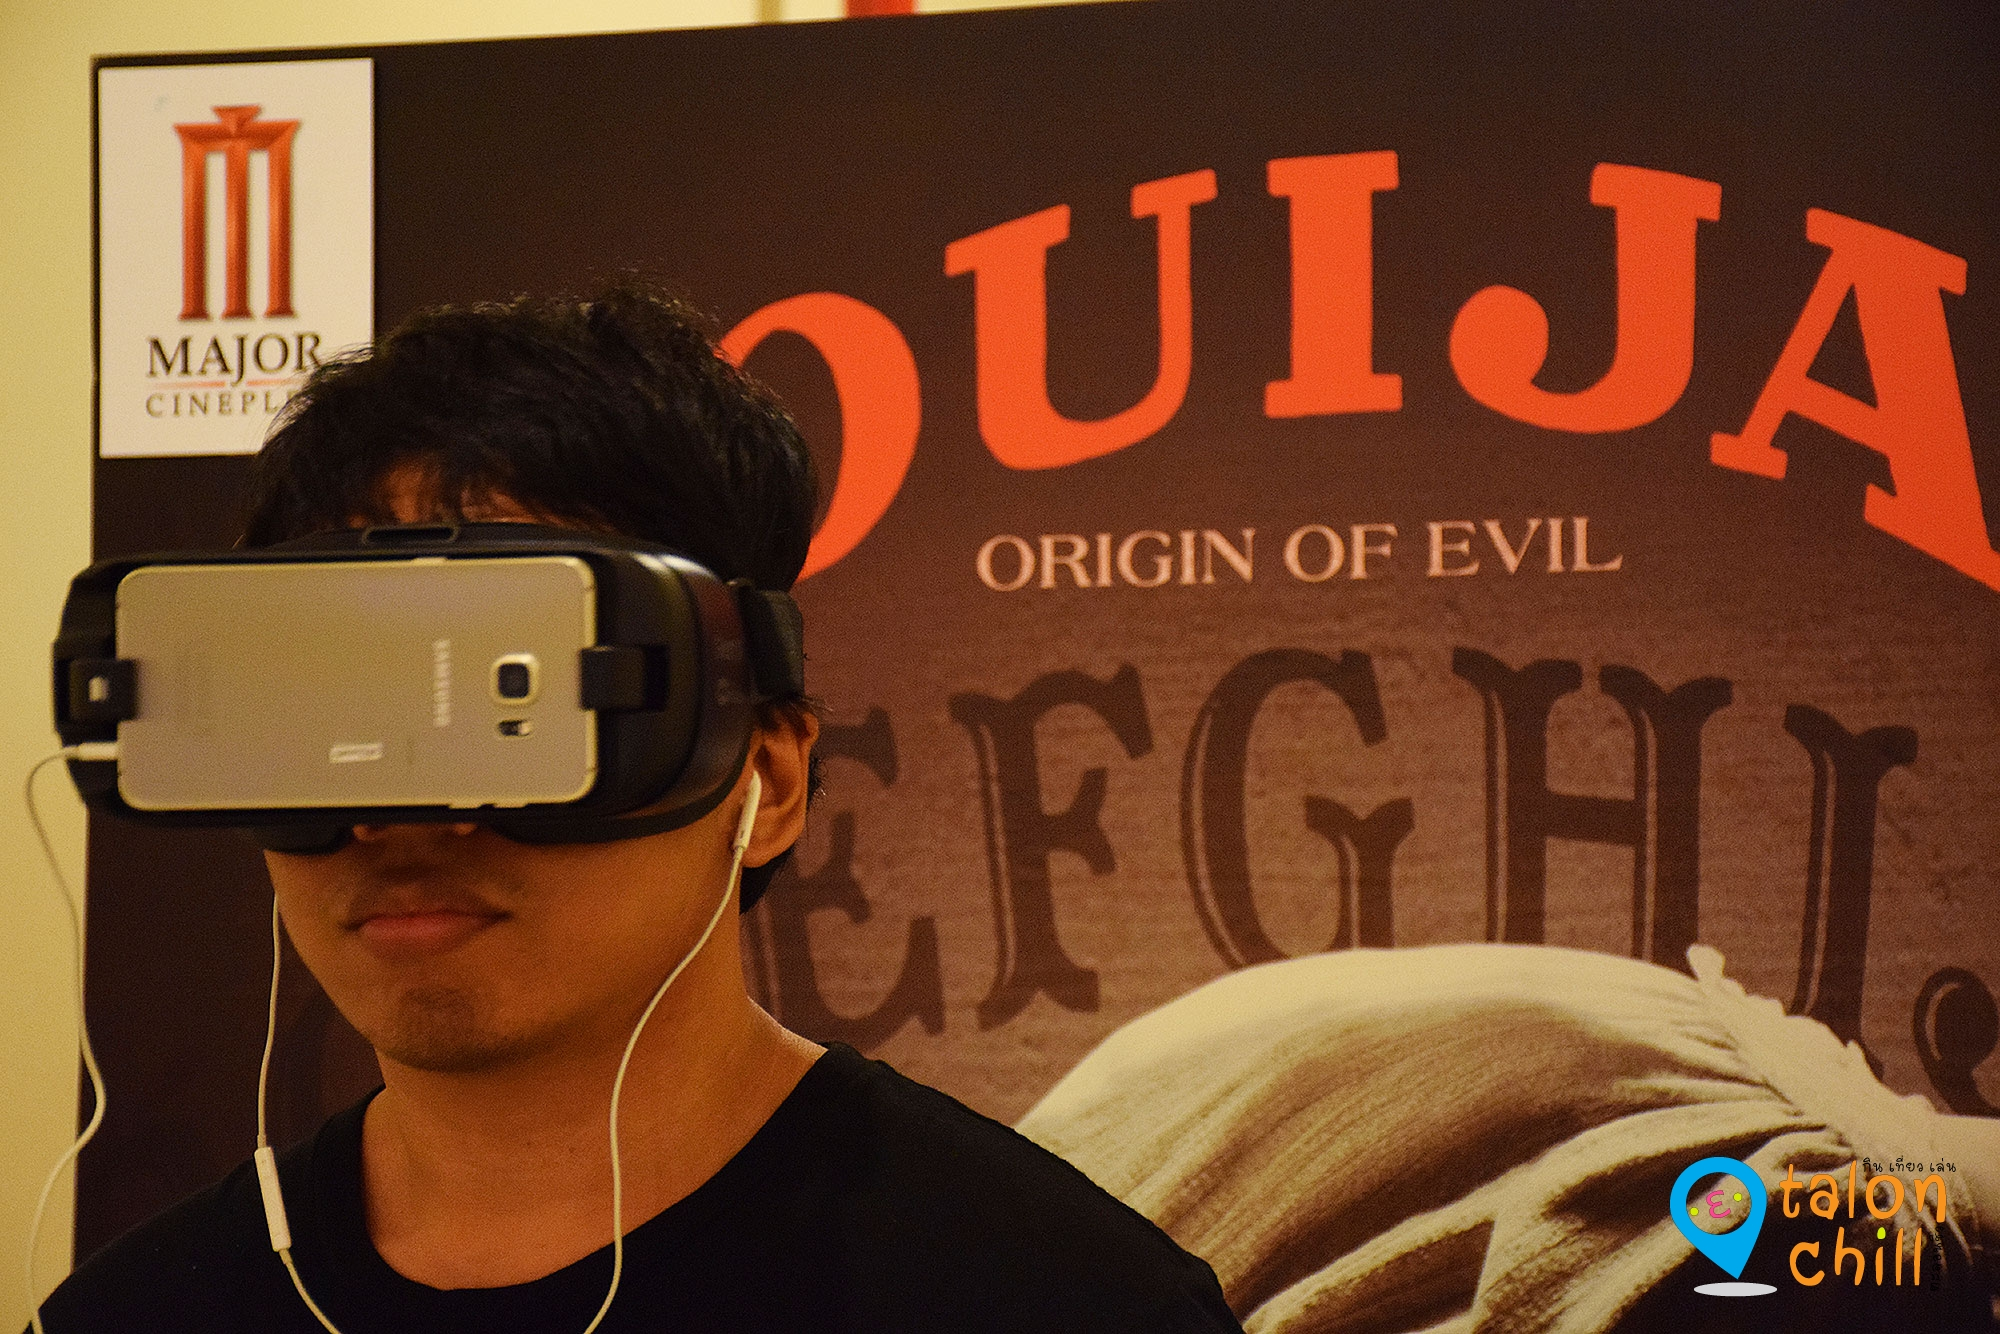 review samsung gear vr by oculus ouija 2 360 vr 6